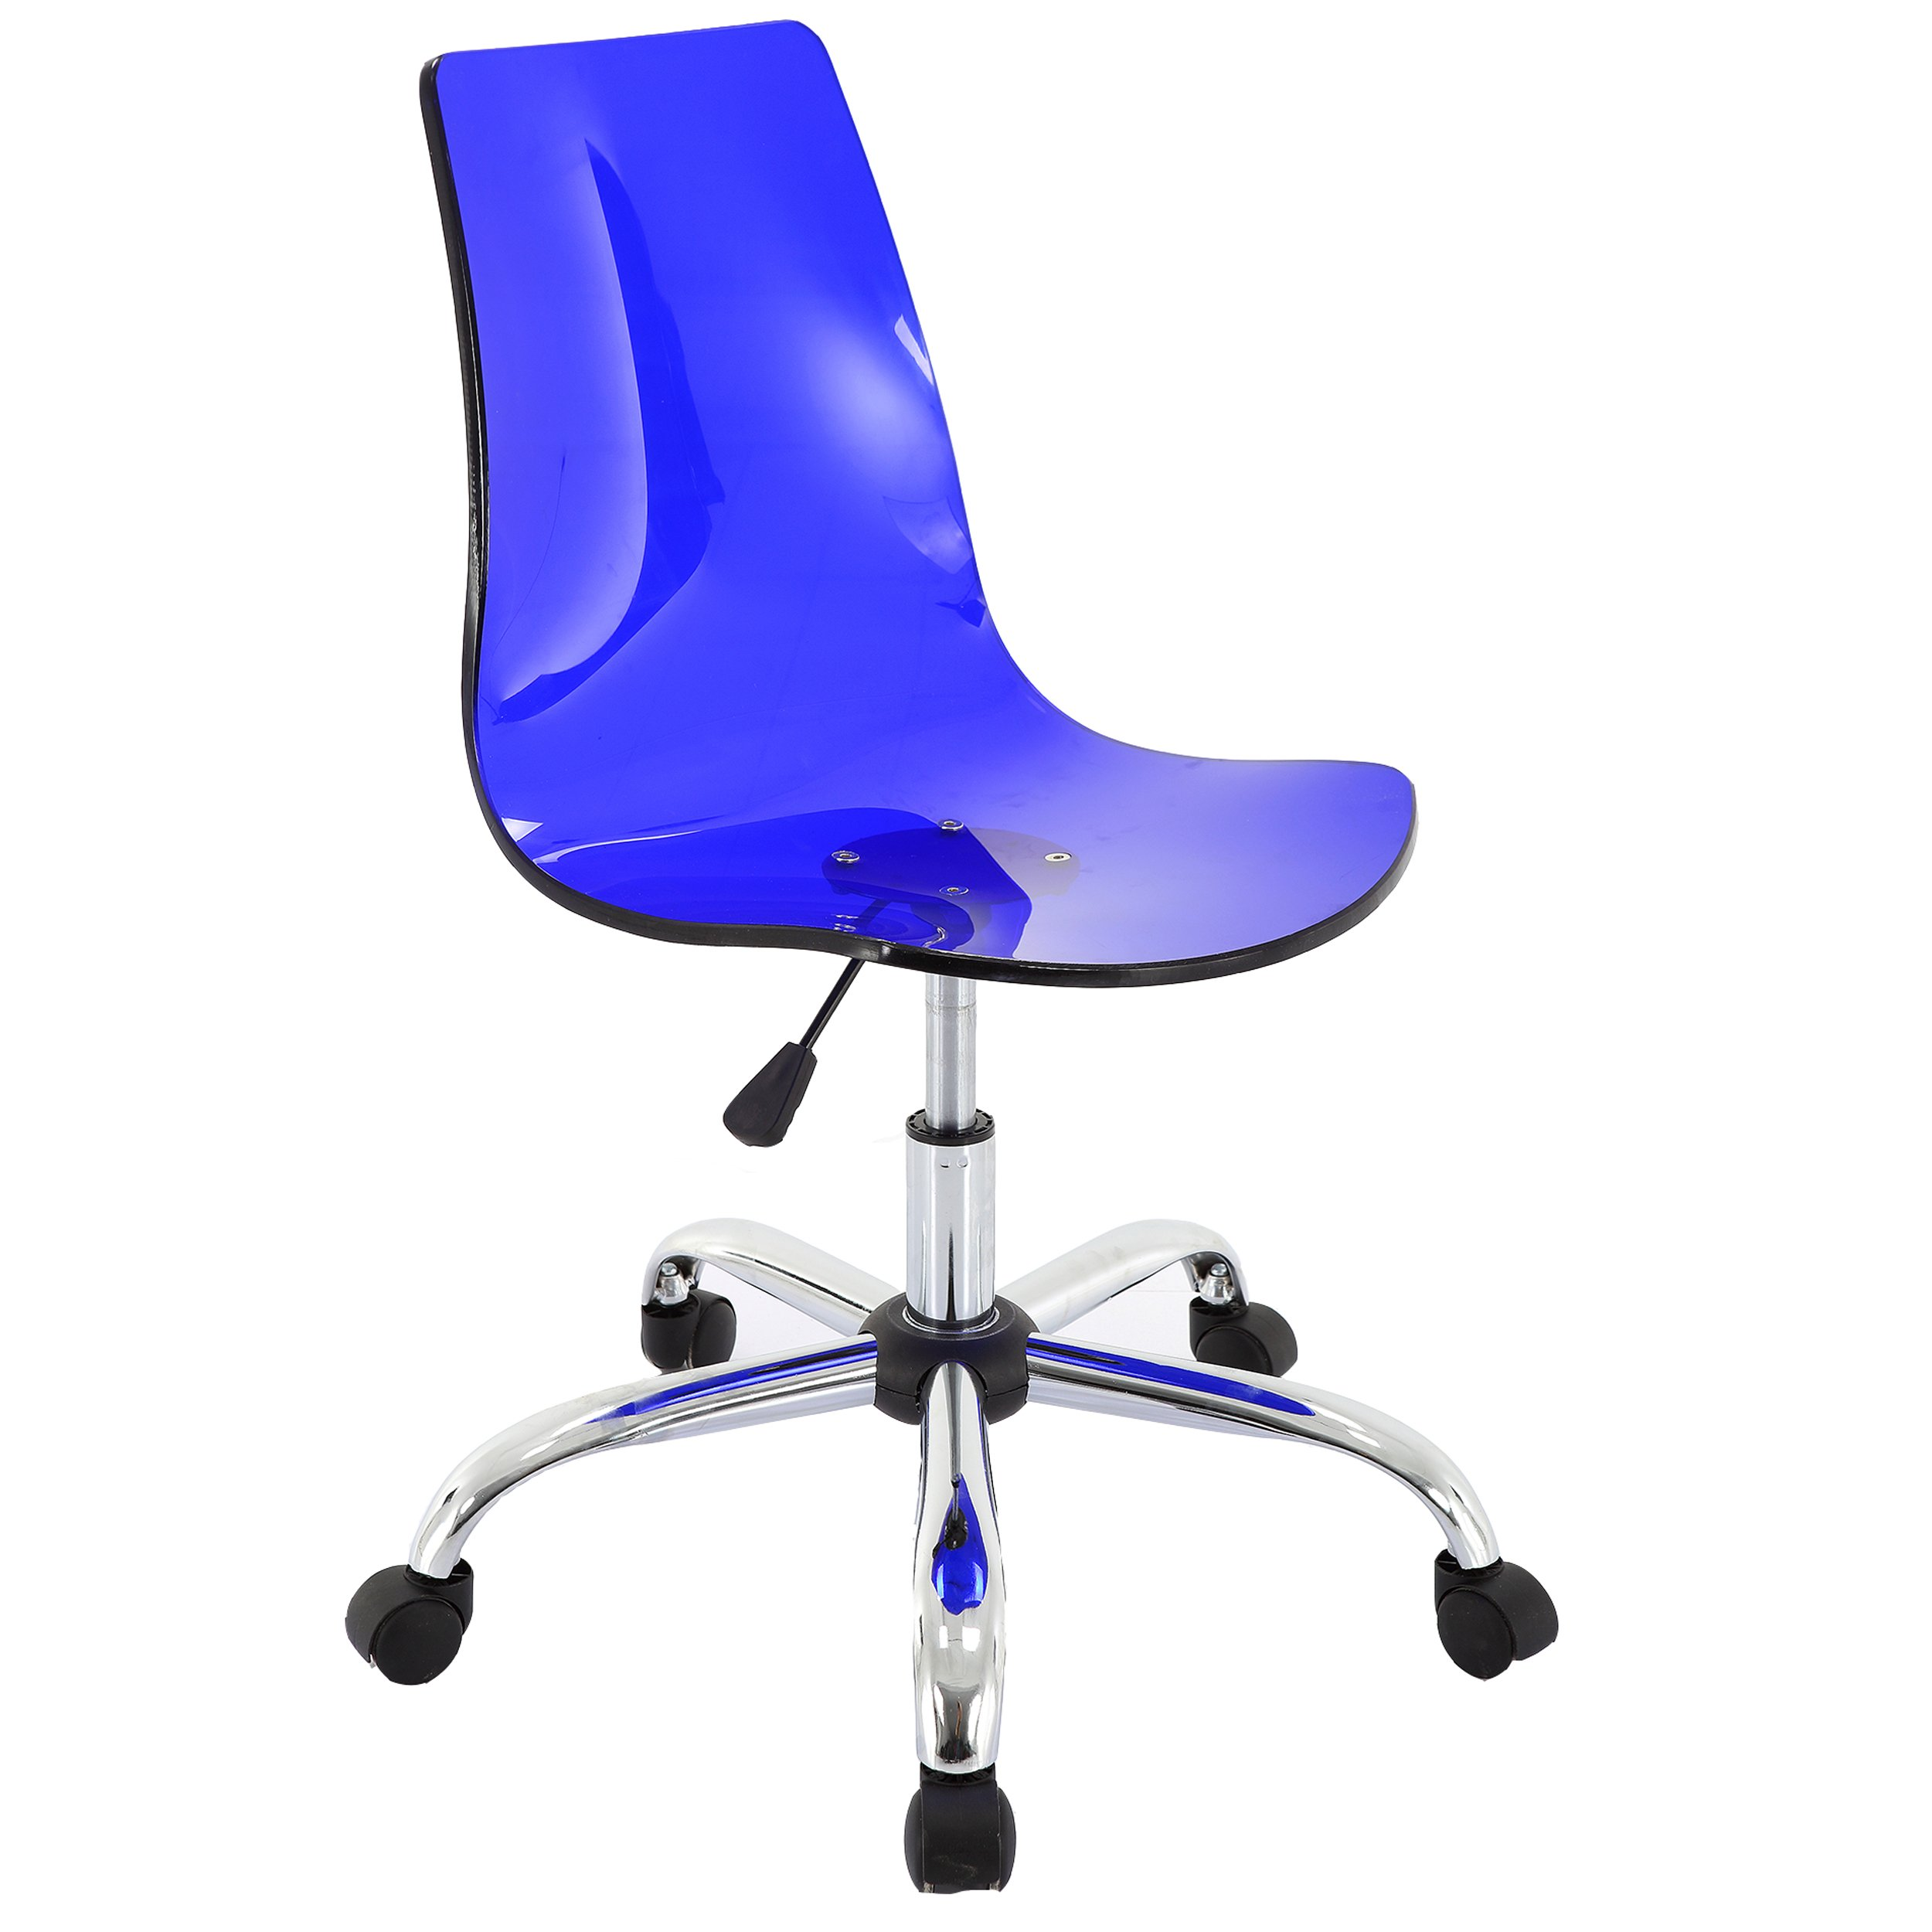 Vogue Furniture Direct Adjustable Blue Acrylic Swivel Chair-VF1551009